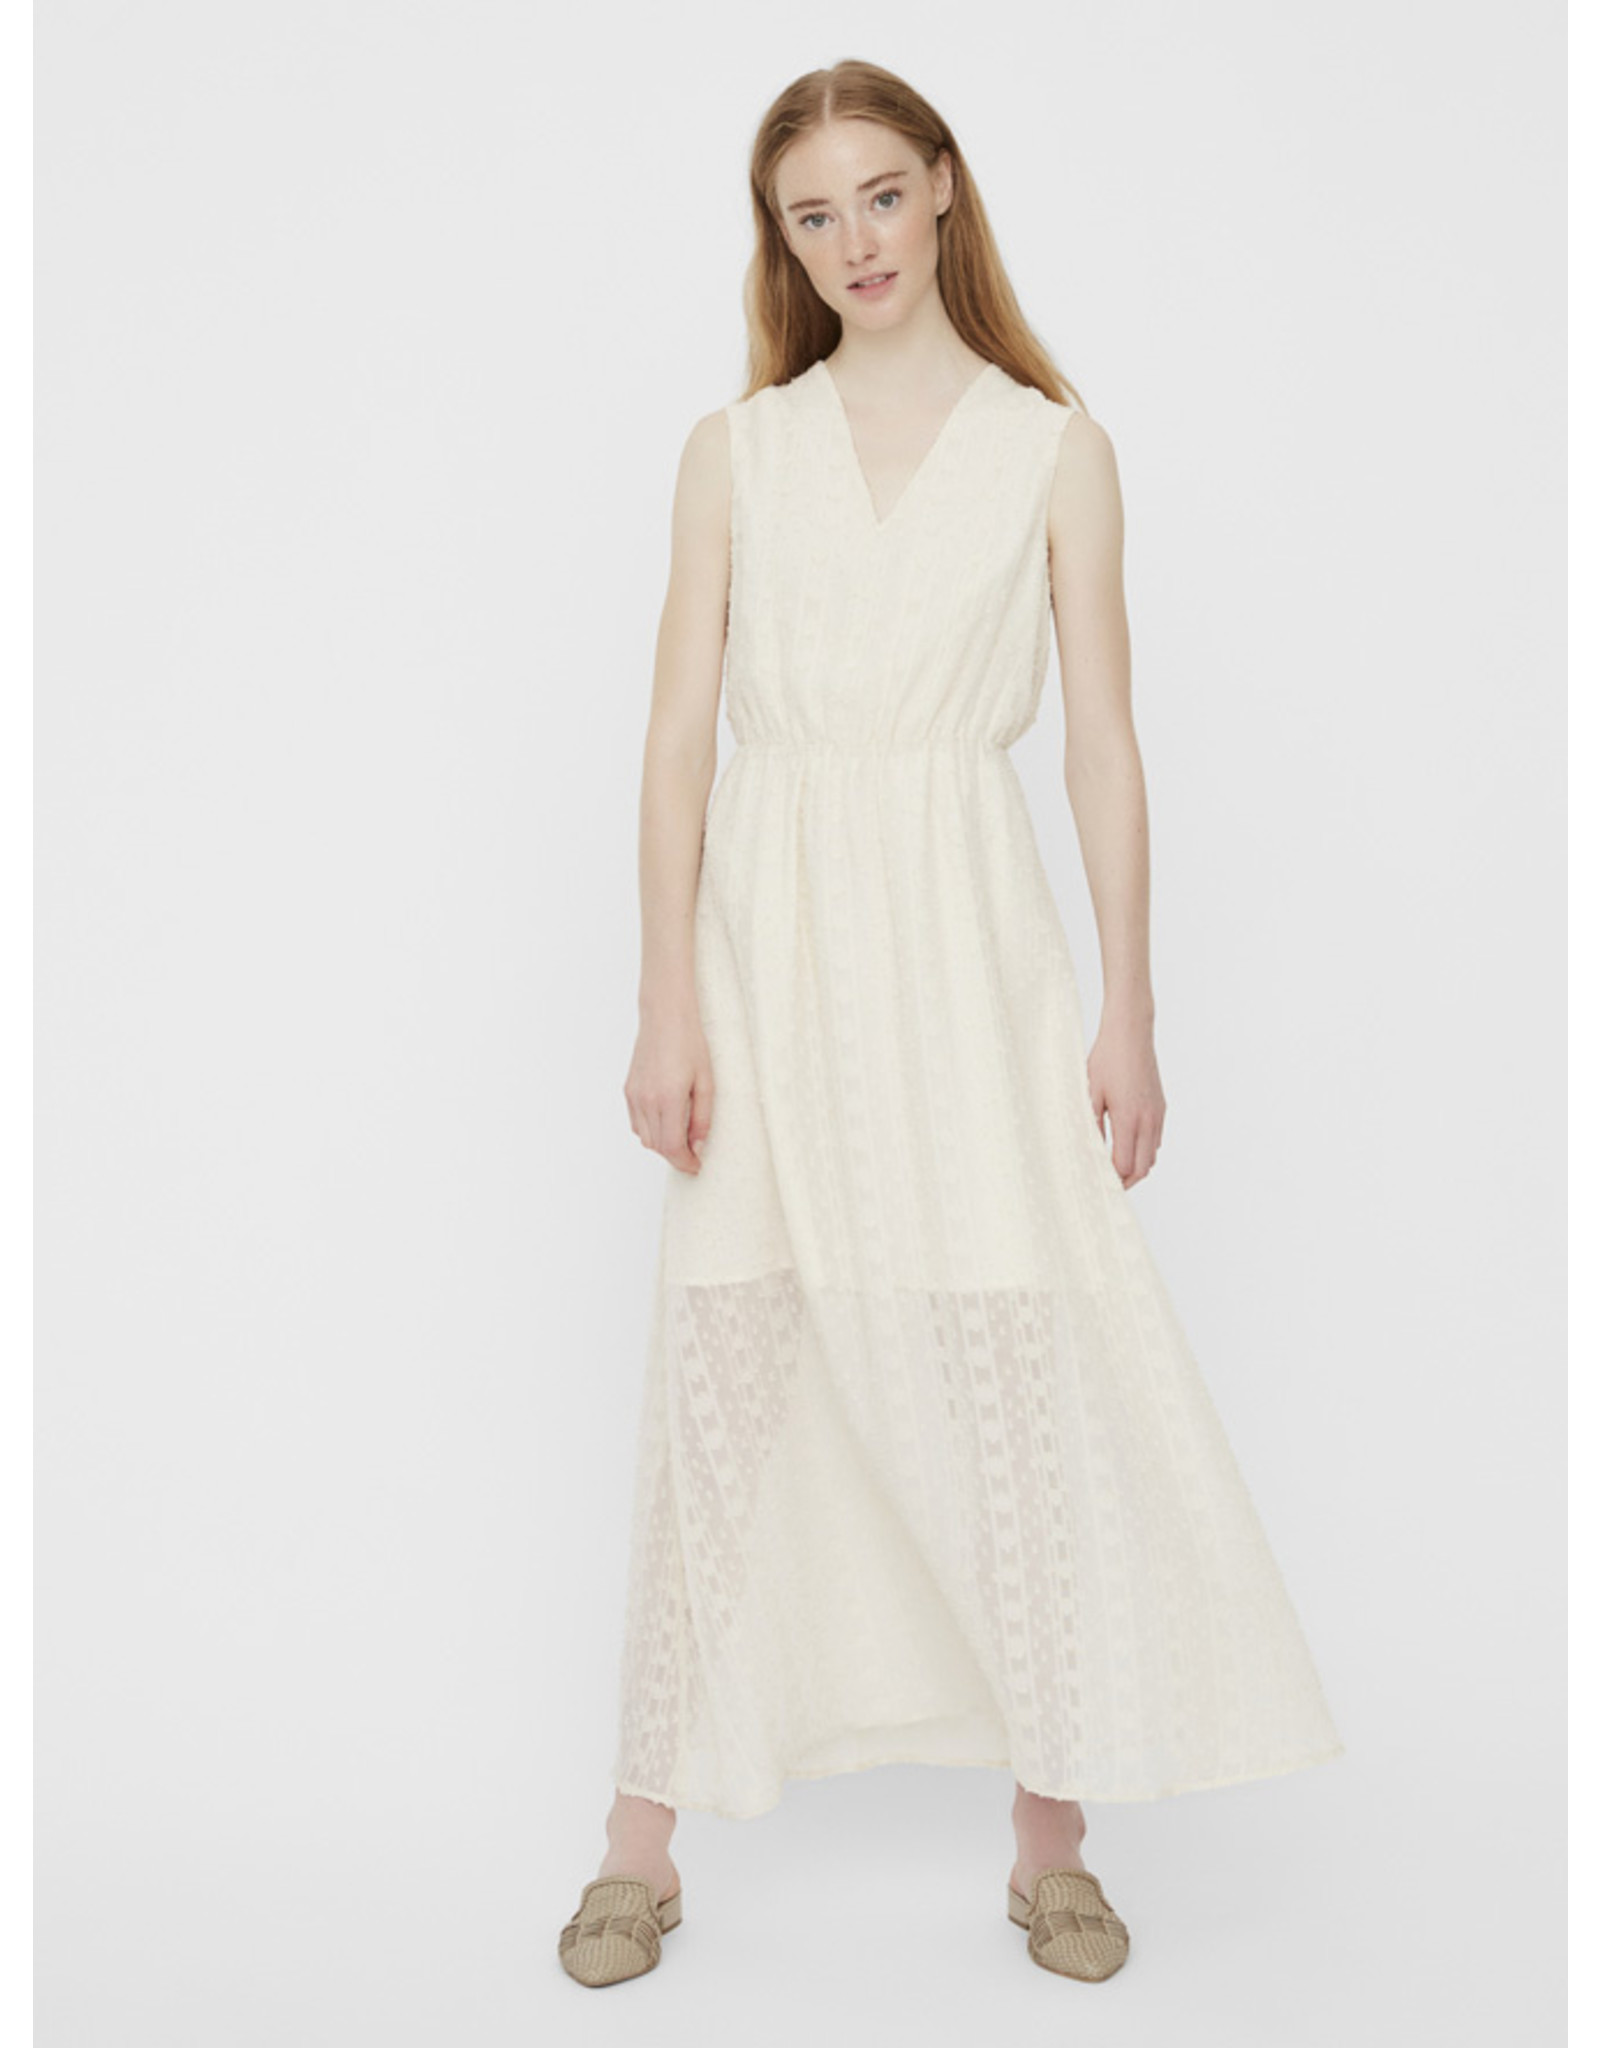 V. Z20 YKKE ANKLE DRESS BIRCH